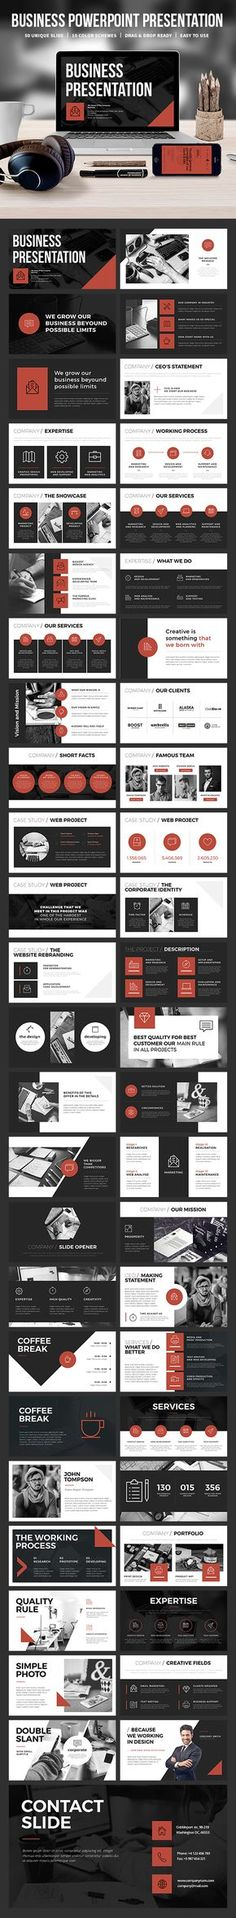 #Business #Powerpoint Template - Business PowerPoint #Templates Download here: https://graphicriver.net/item/business-powerpoint-template/19391681?ref=alena994